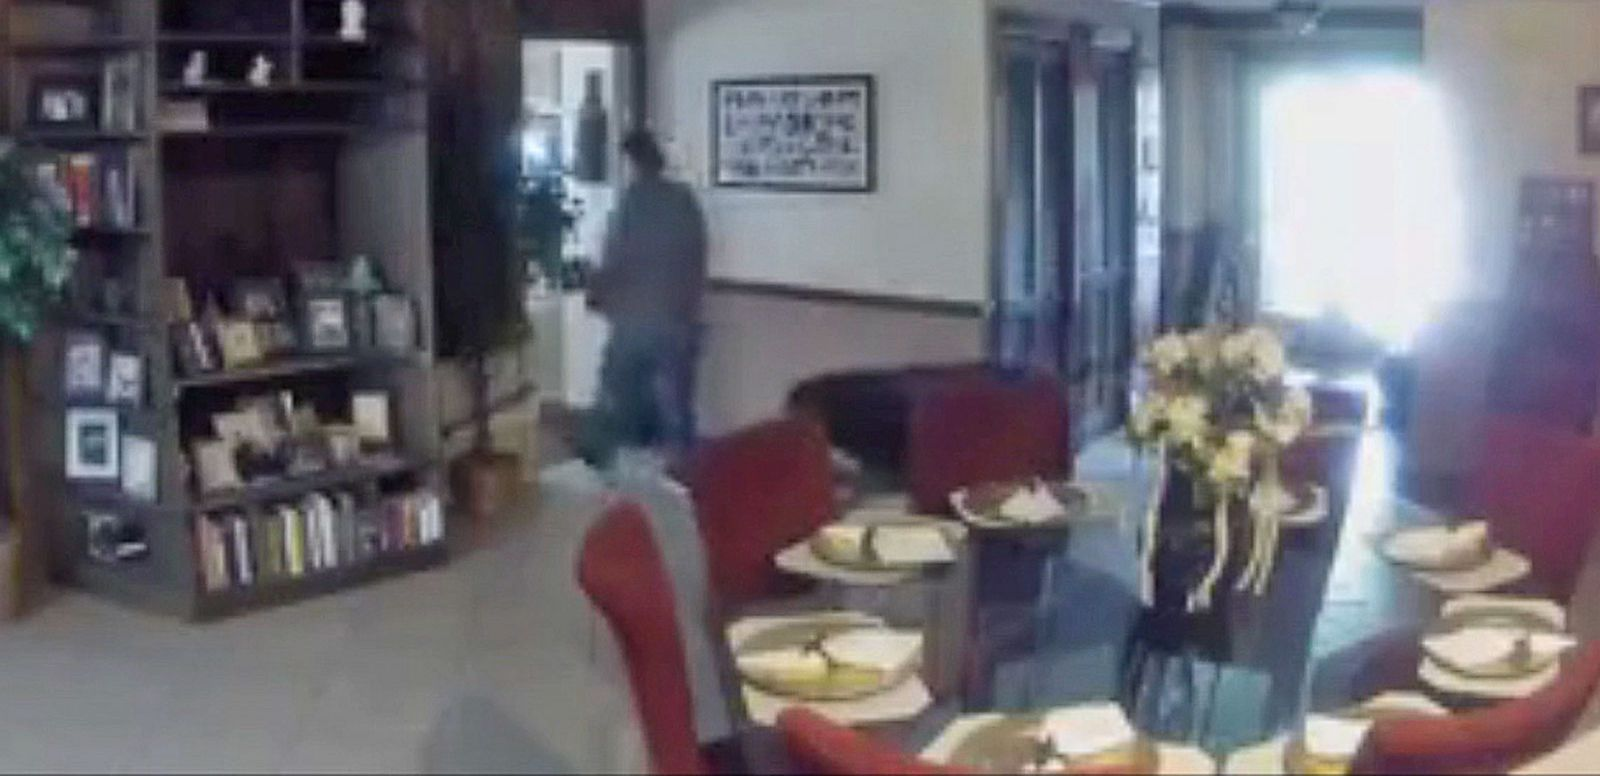 VIDEO: Homeowner Sees Burglar Break In Through Phone App